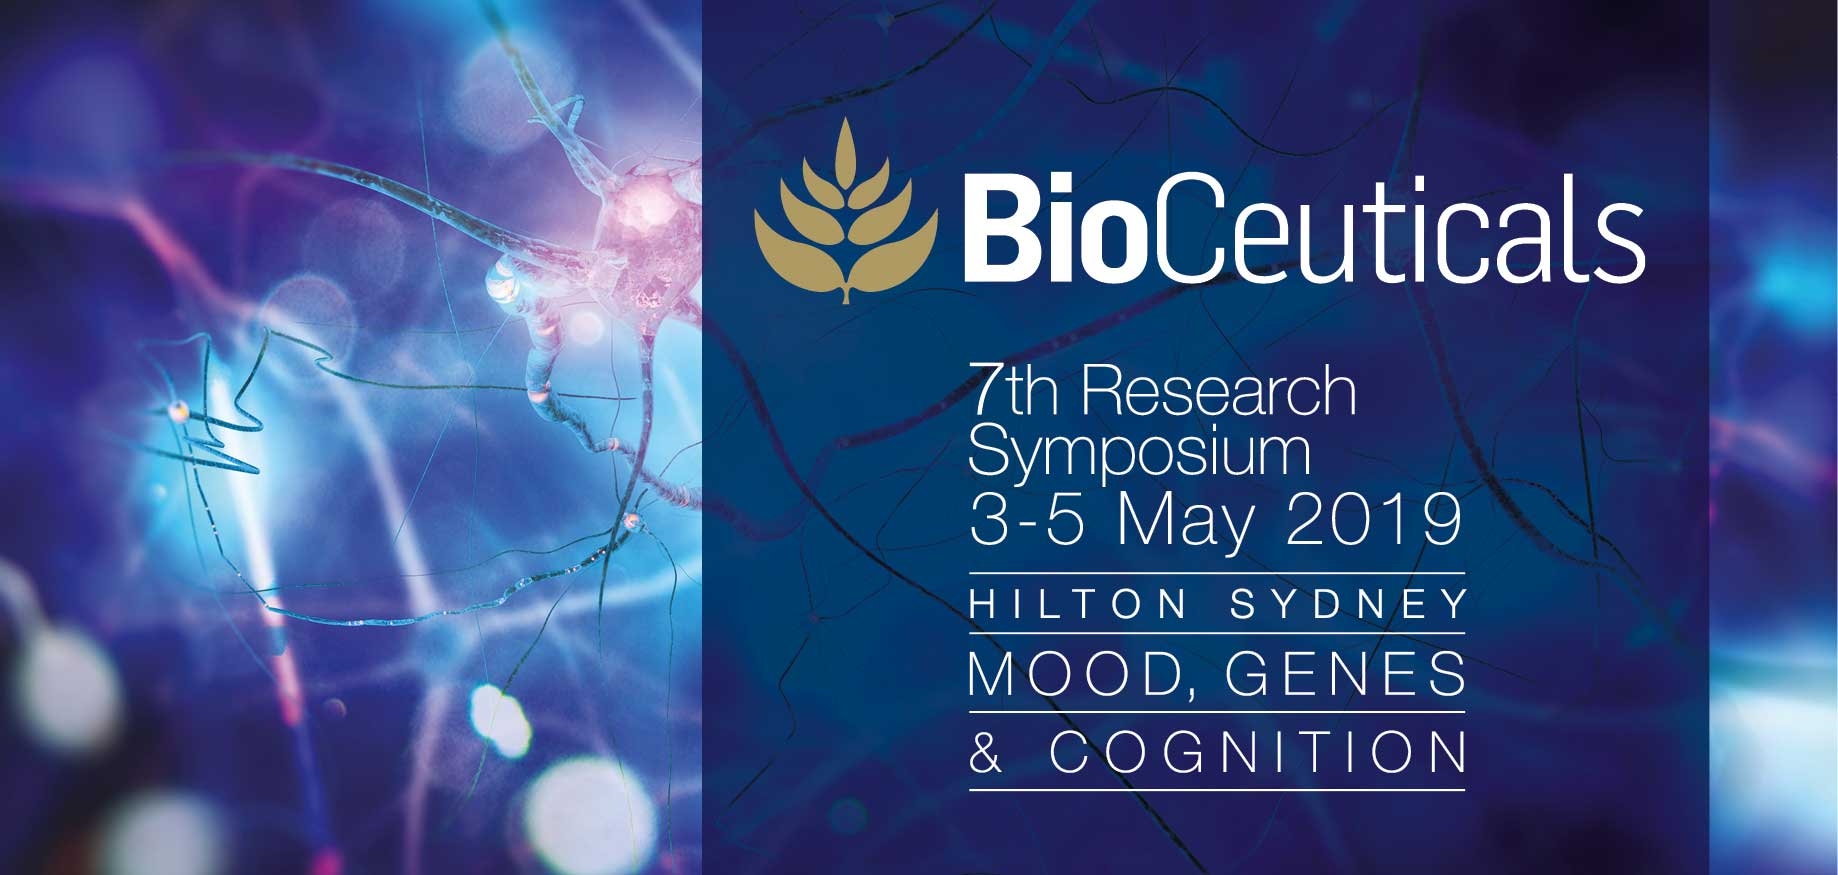 7th BioCeuticals Research Symposium